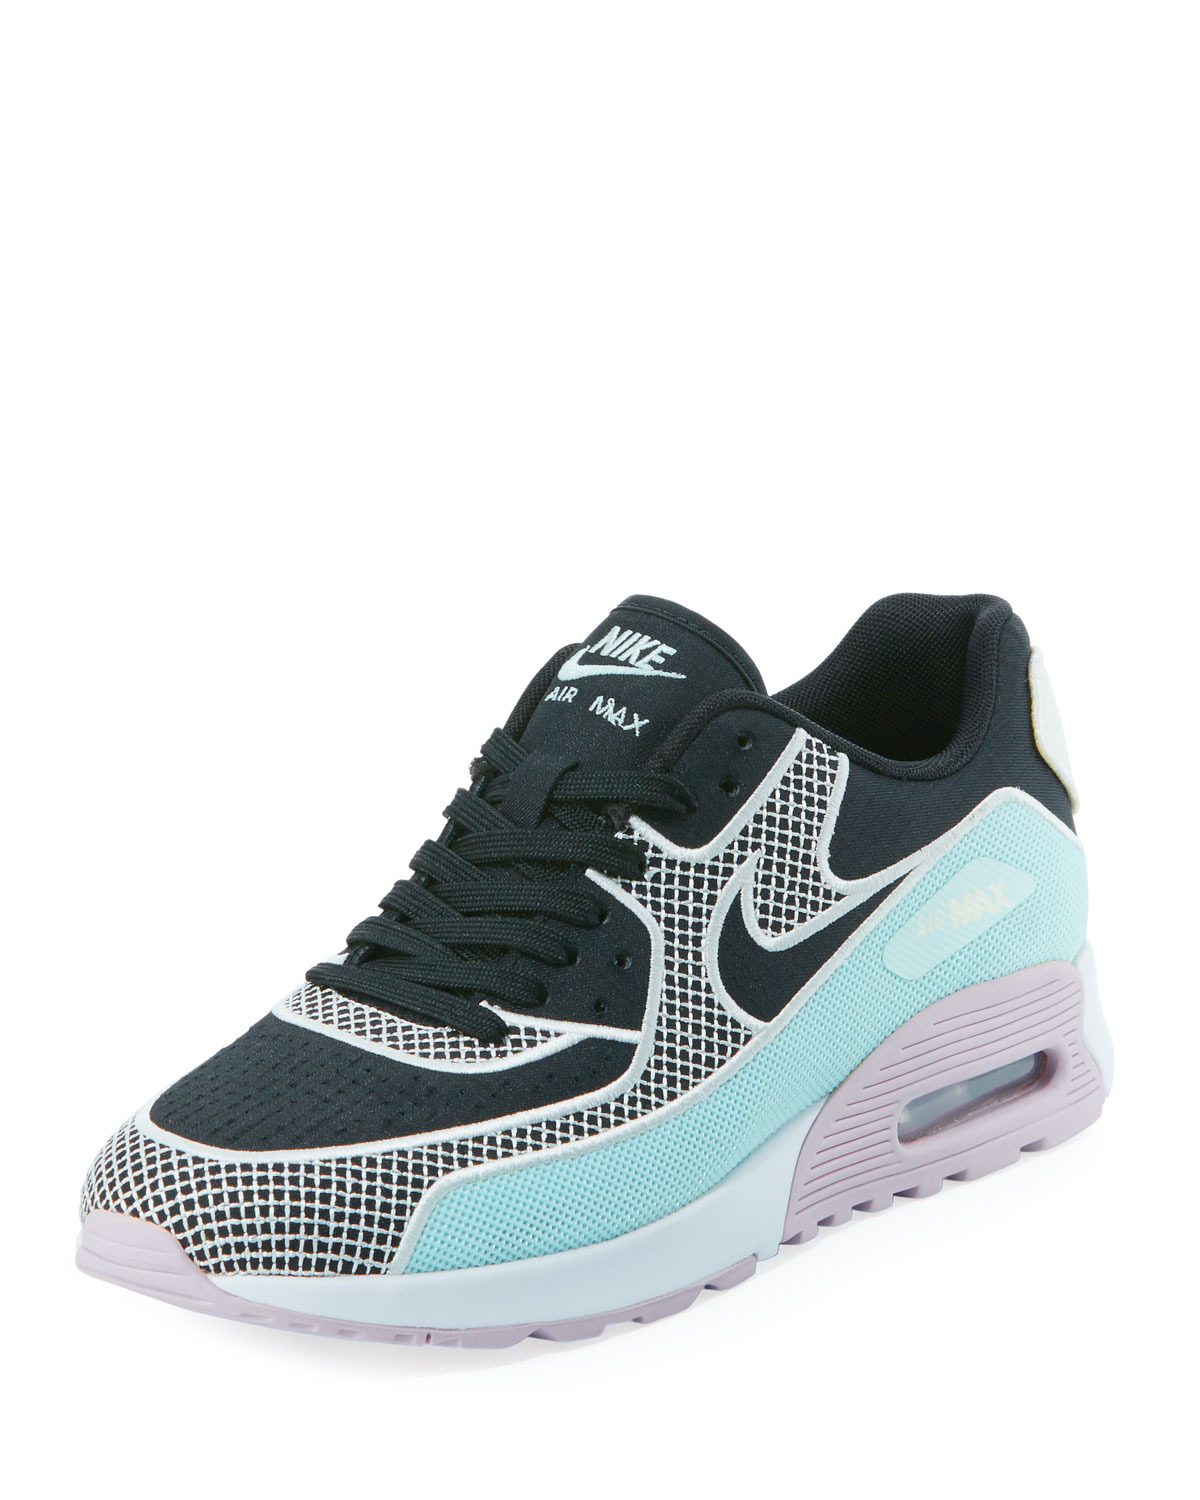 nike air max 90 pink sale neiman